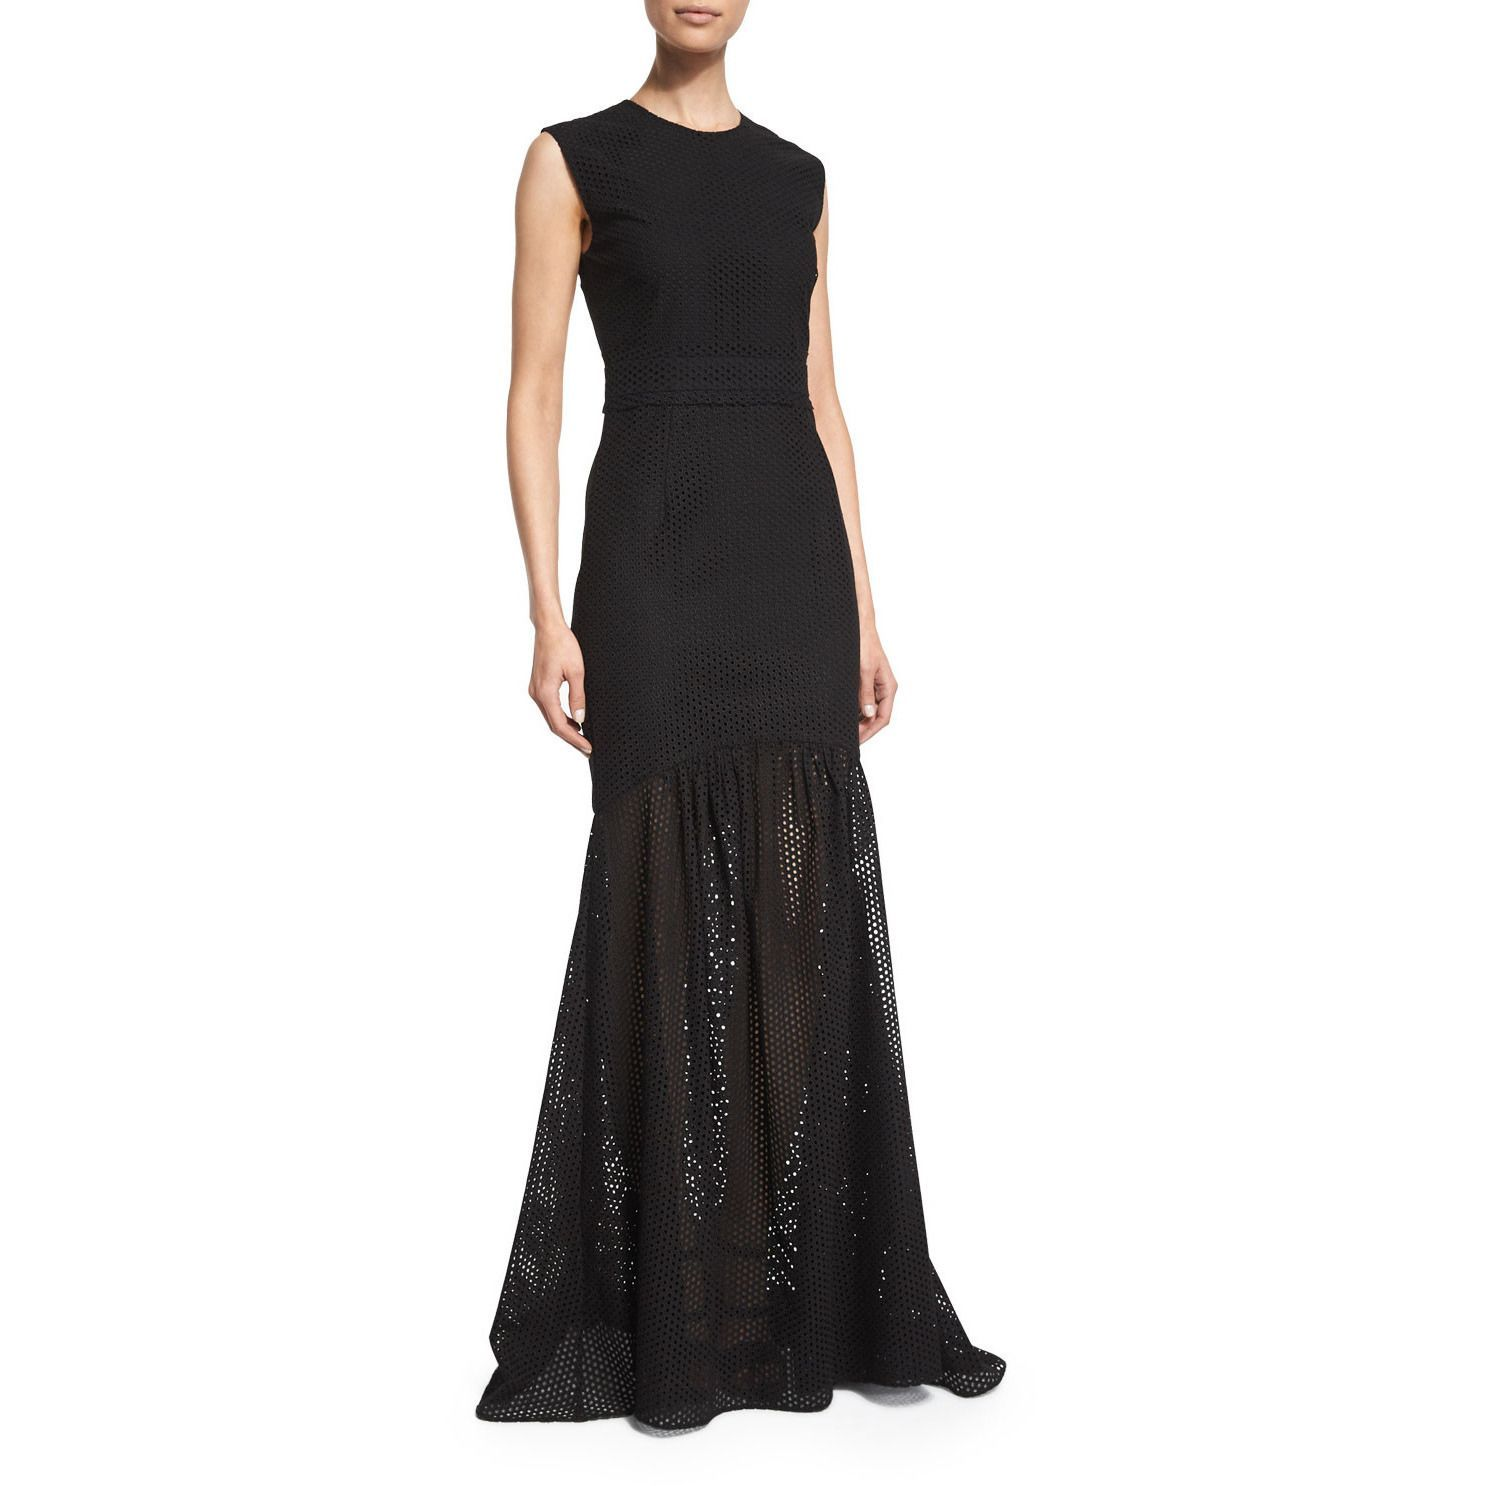 Sleeveless Eyelet Mermaid Gown, Black | Products | Pinterest ...